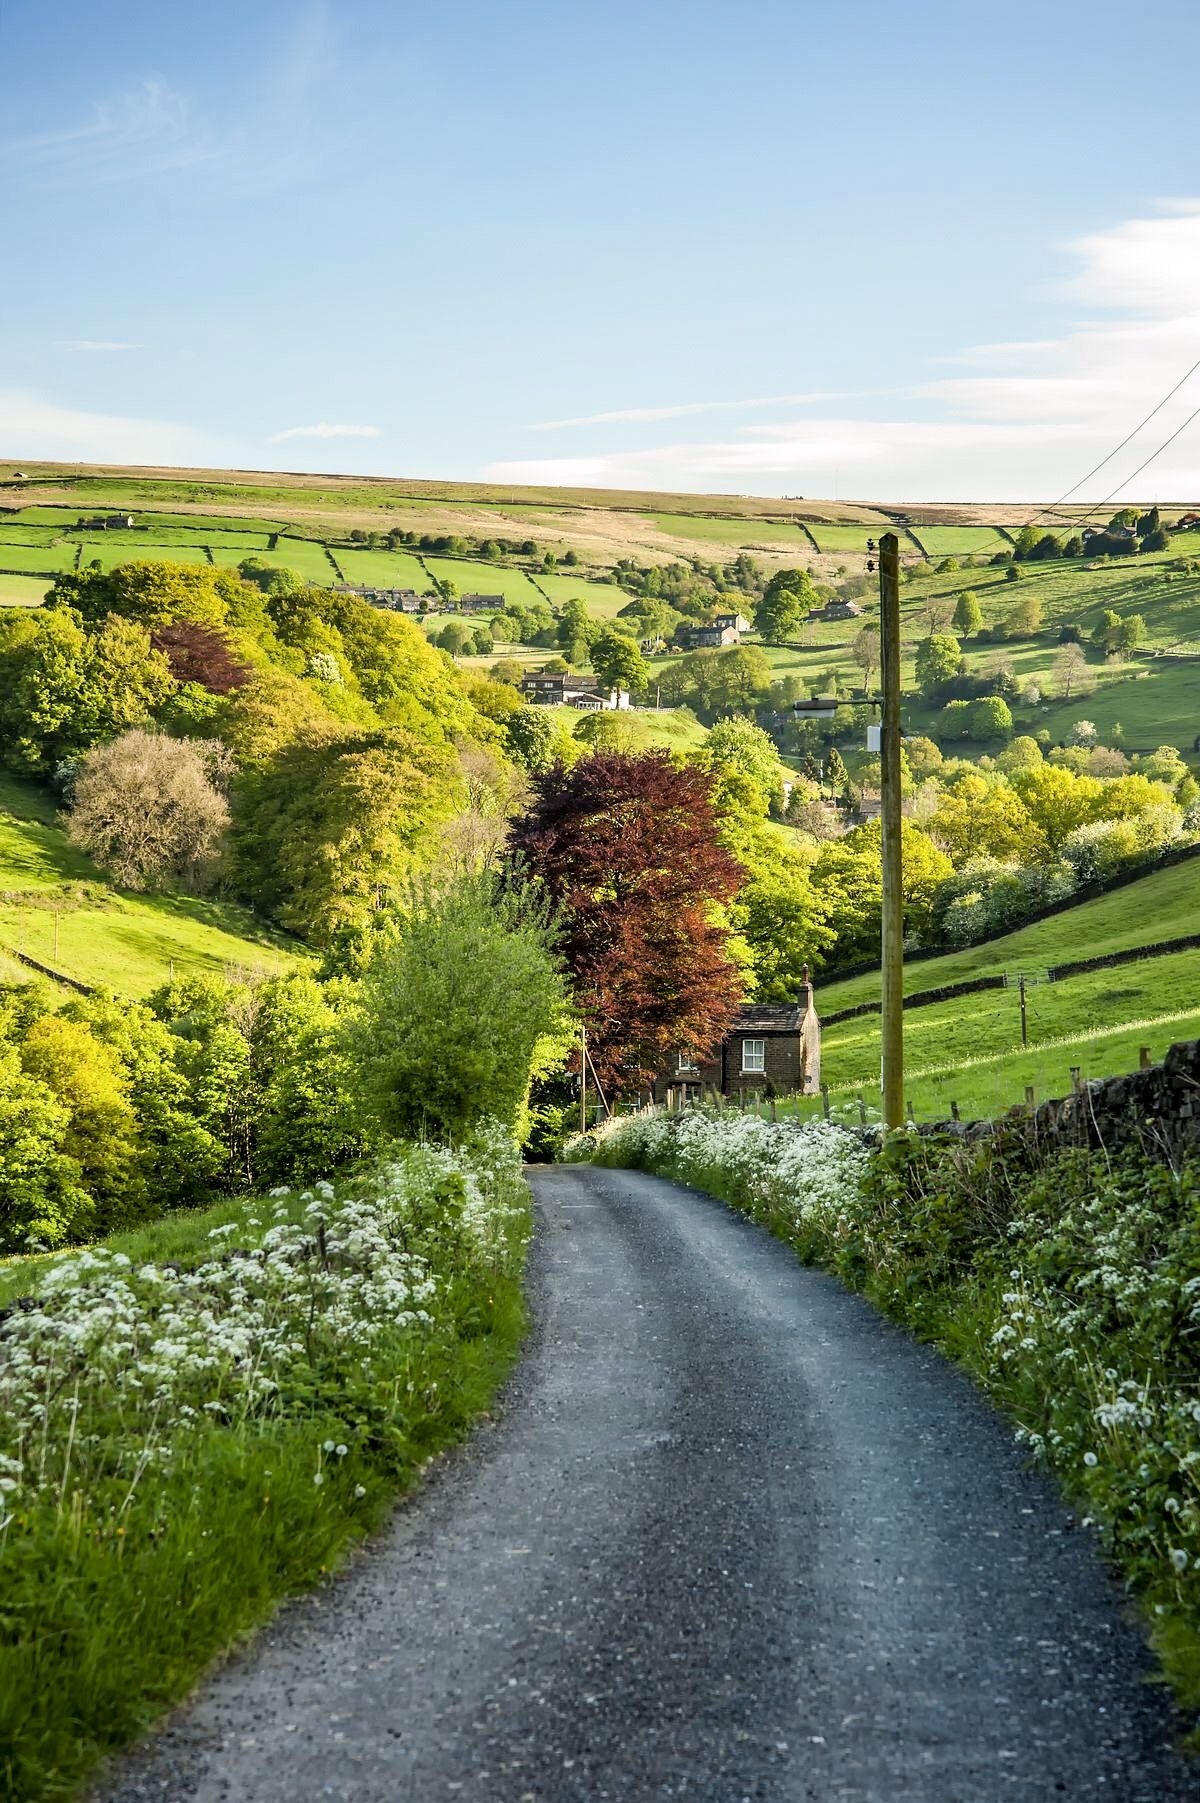 ***Country Road In The Yorkshire Dales (England) By Petejeff Cr